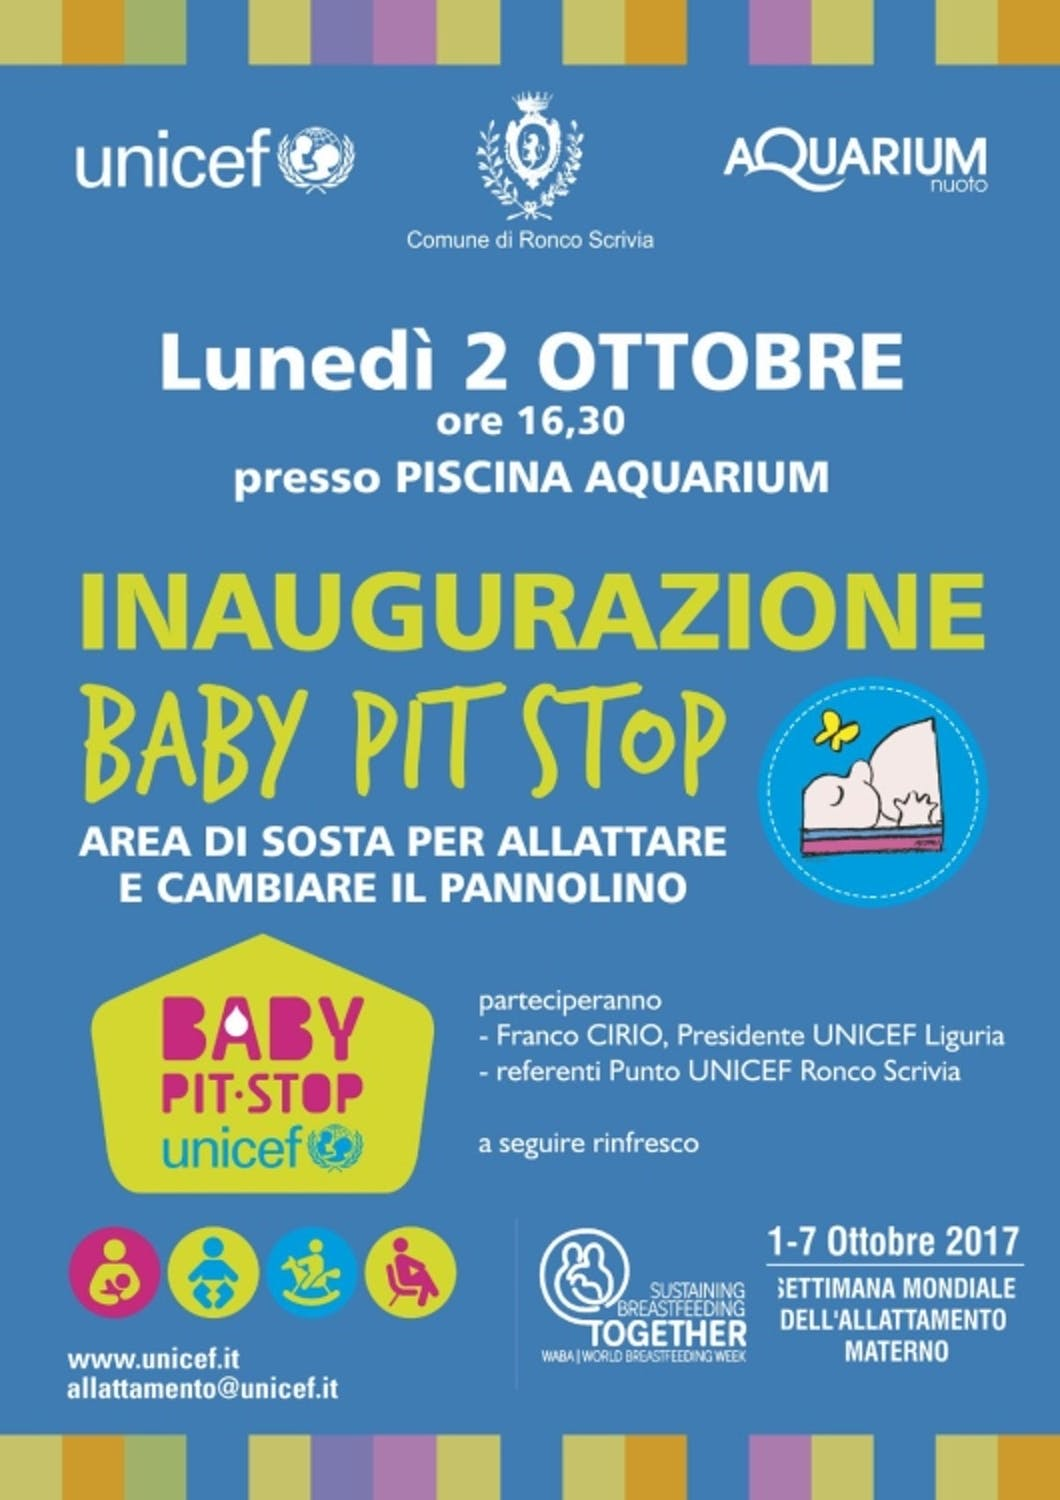 Baby Pit Stop alla piscina comunale